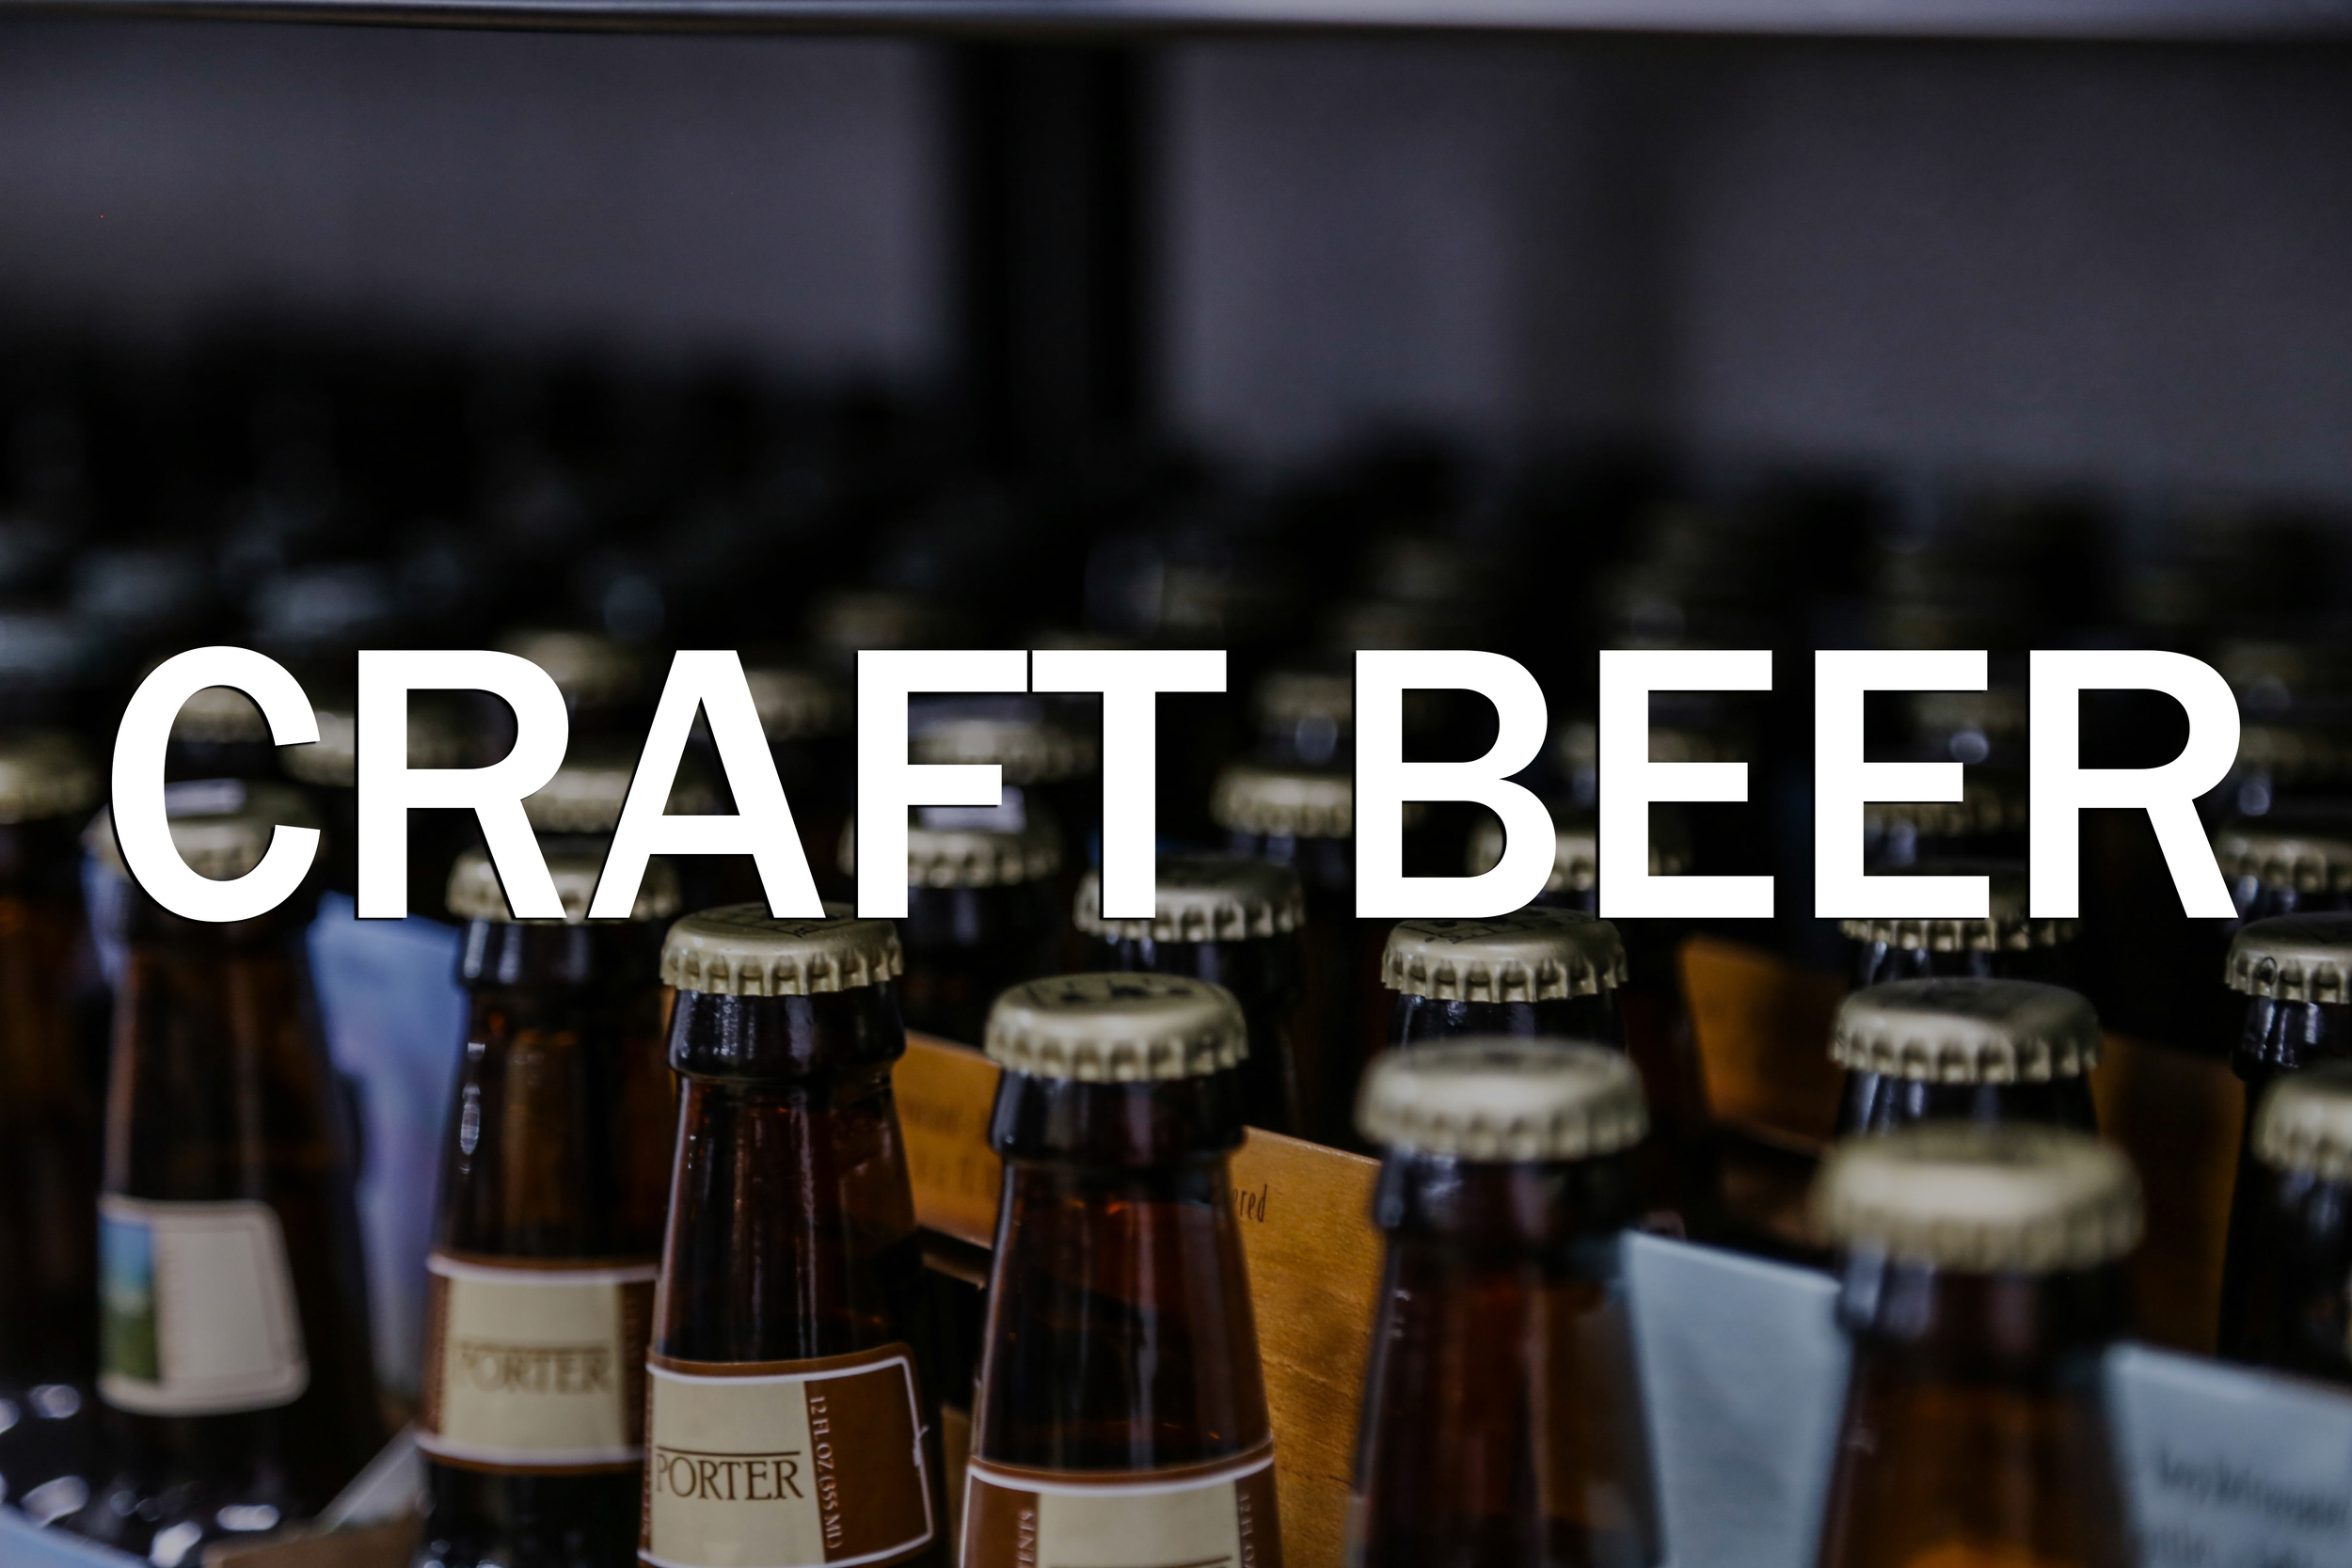 <p><strong></strong>Our selection of over 250 Craft Beers is ridiculous. Think you can remember them all?<a href=http://www.crestonmarketgr.com/craft-beer>Hop to It →</a></p>